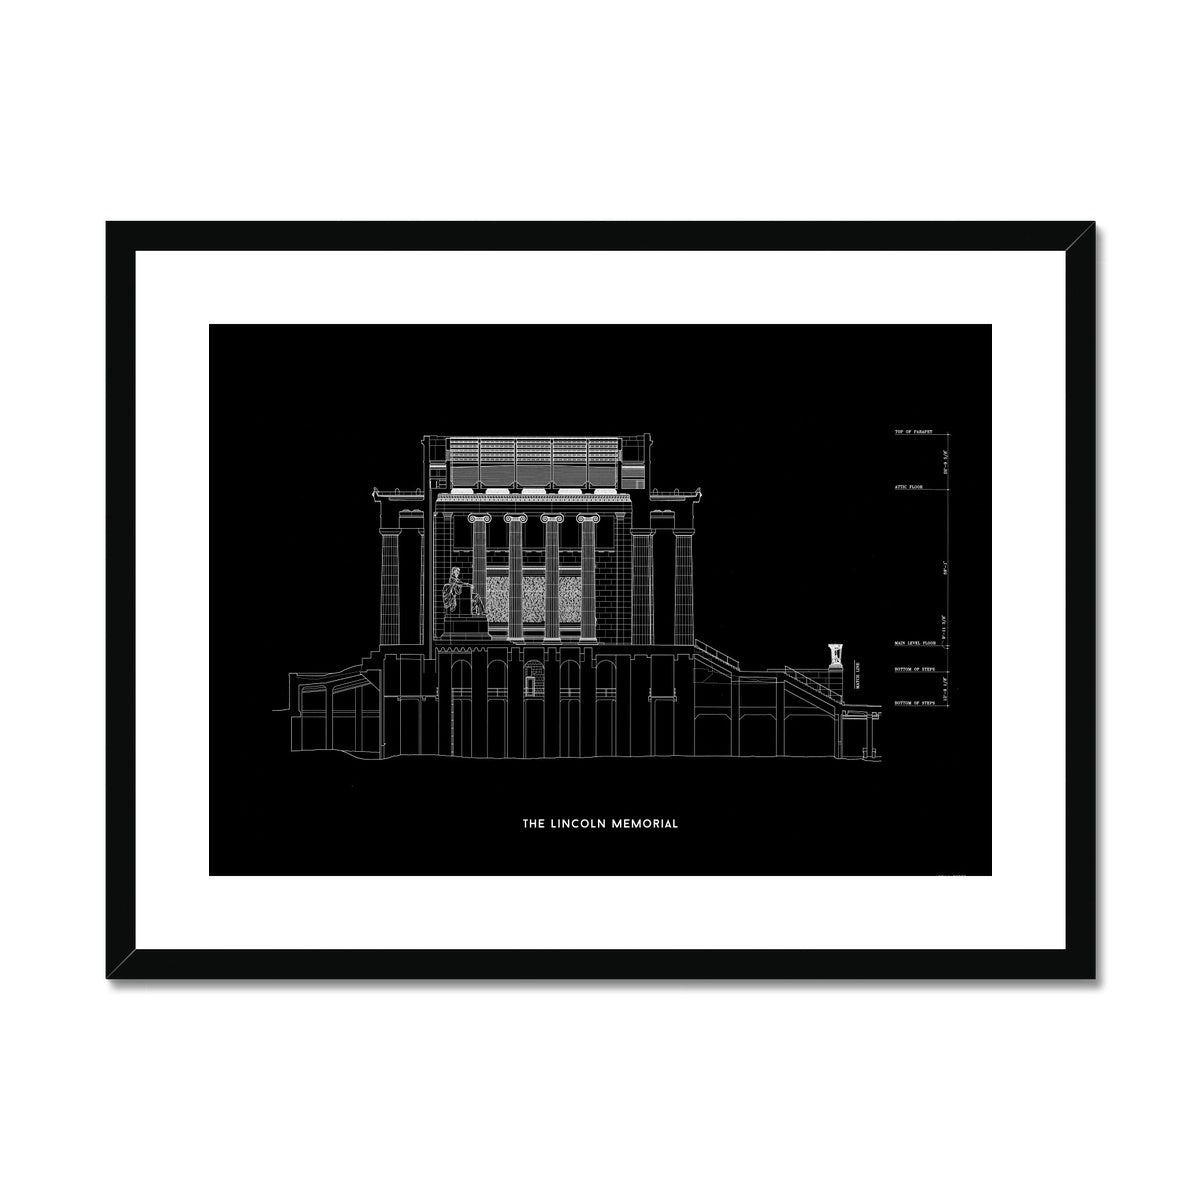 The Lincoln Memorial North Elevation Cross Section - Black -  Framed & Mounted Print